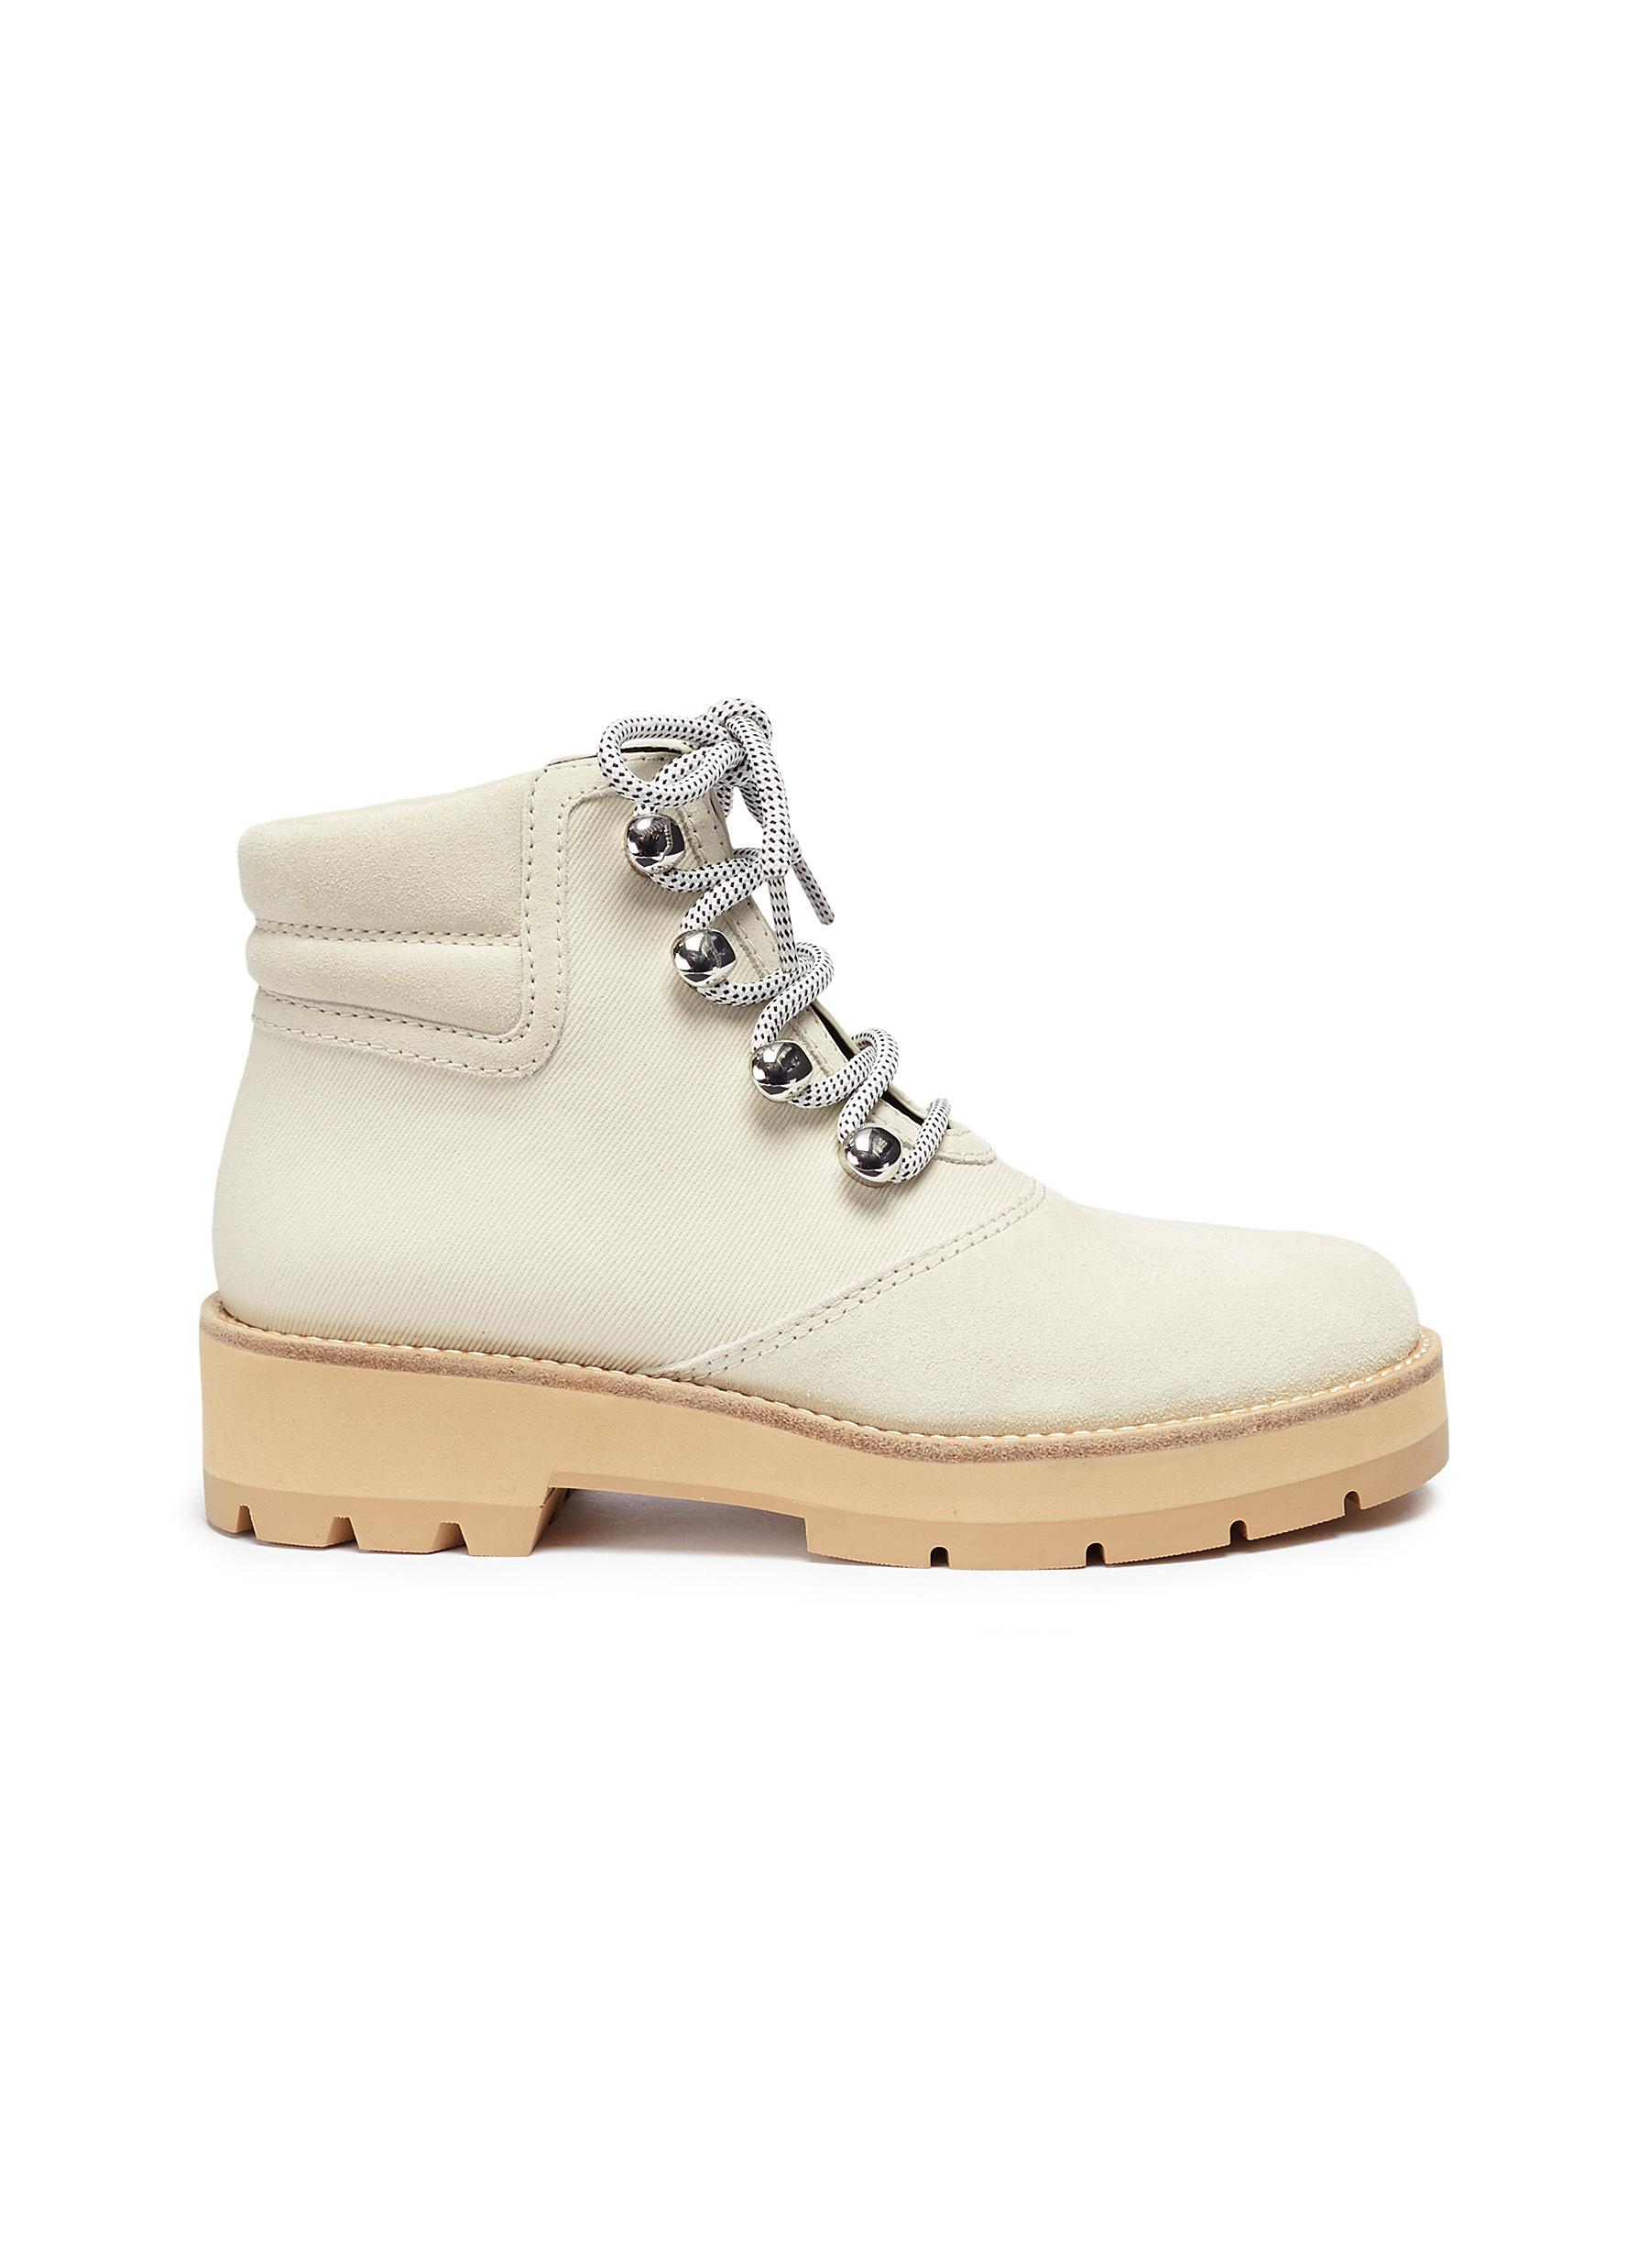 3.1 Phillip Lim Off-White Dylan Hiking Boots authentic cheap price cheapest price cheap price ucotvc